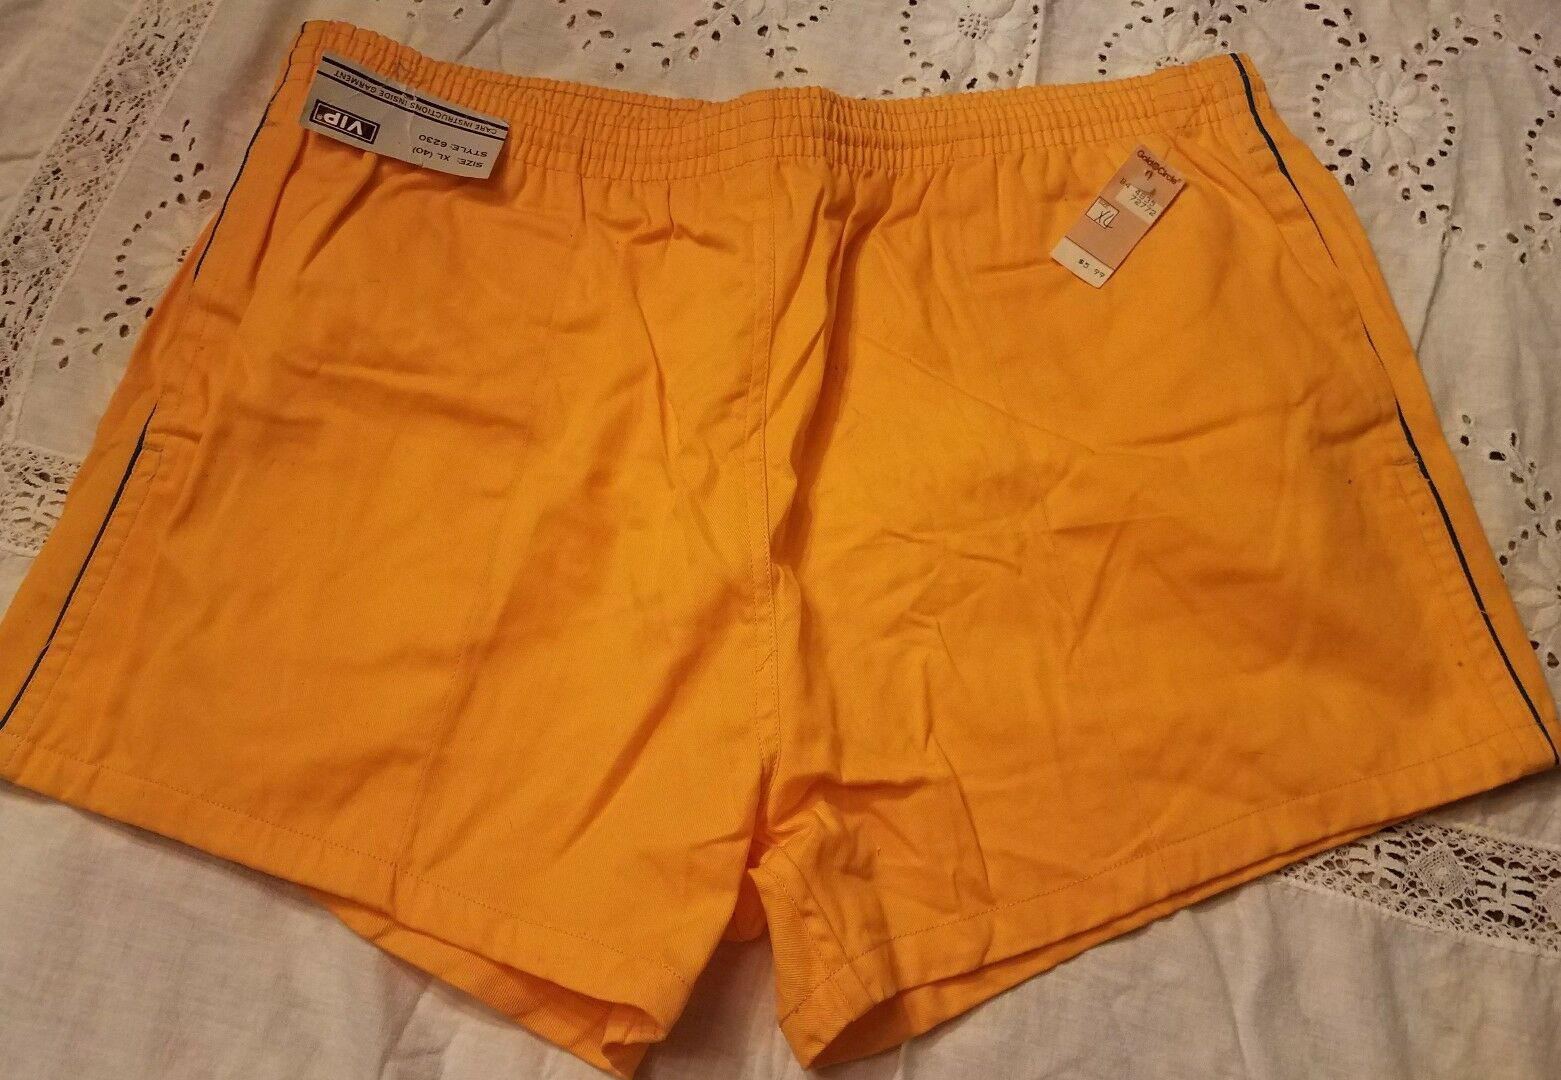 Vintage Men's Shorts Never Worn 70s Size XL 40 Yellow Swim Trunks Running Trunk